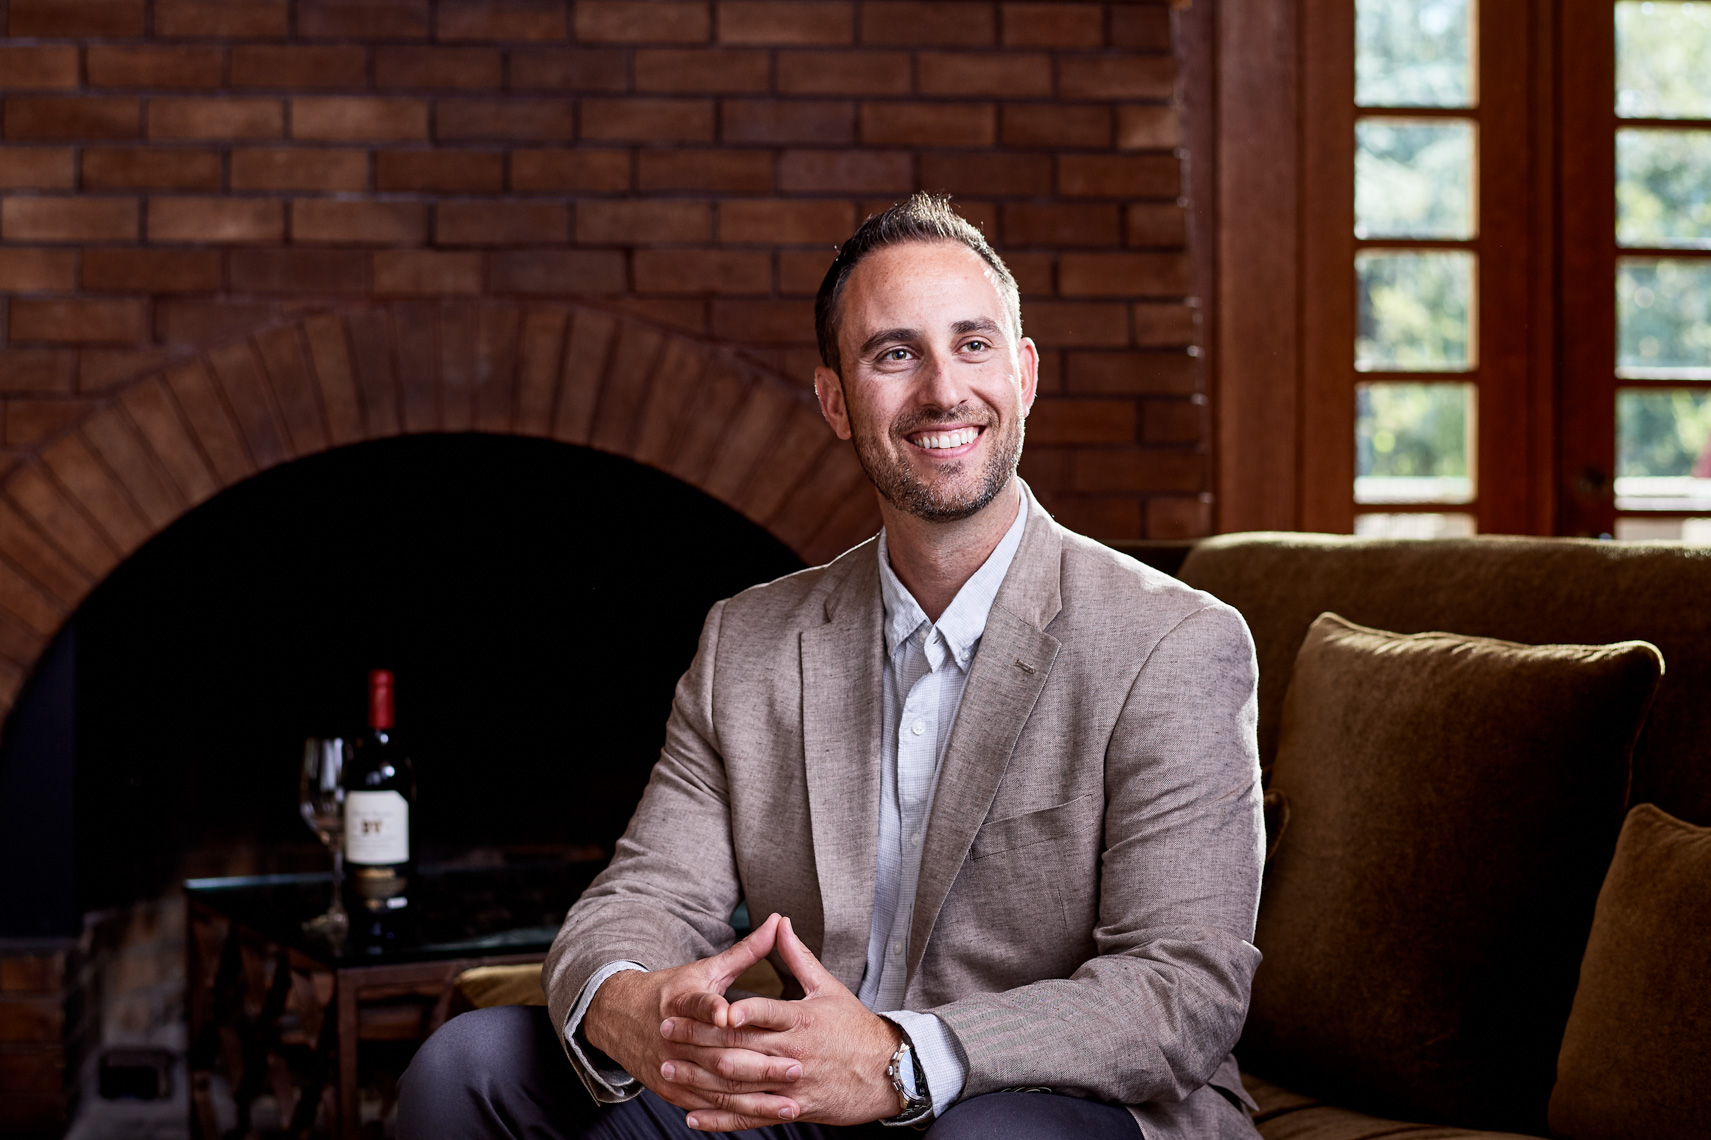 18_08_06_BV_Wines_Couch_Portrait_0071